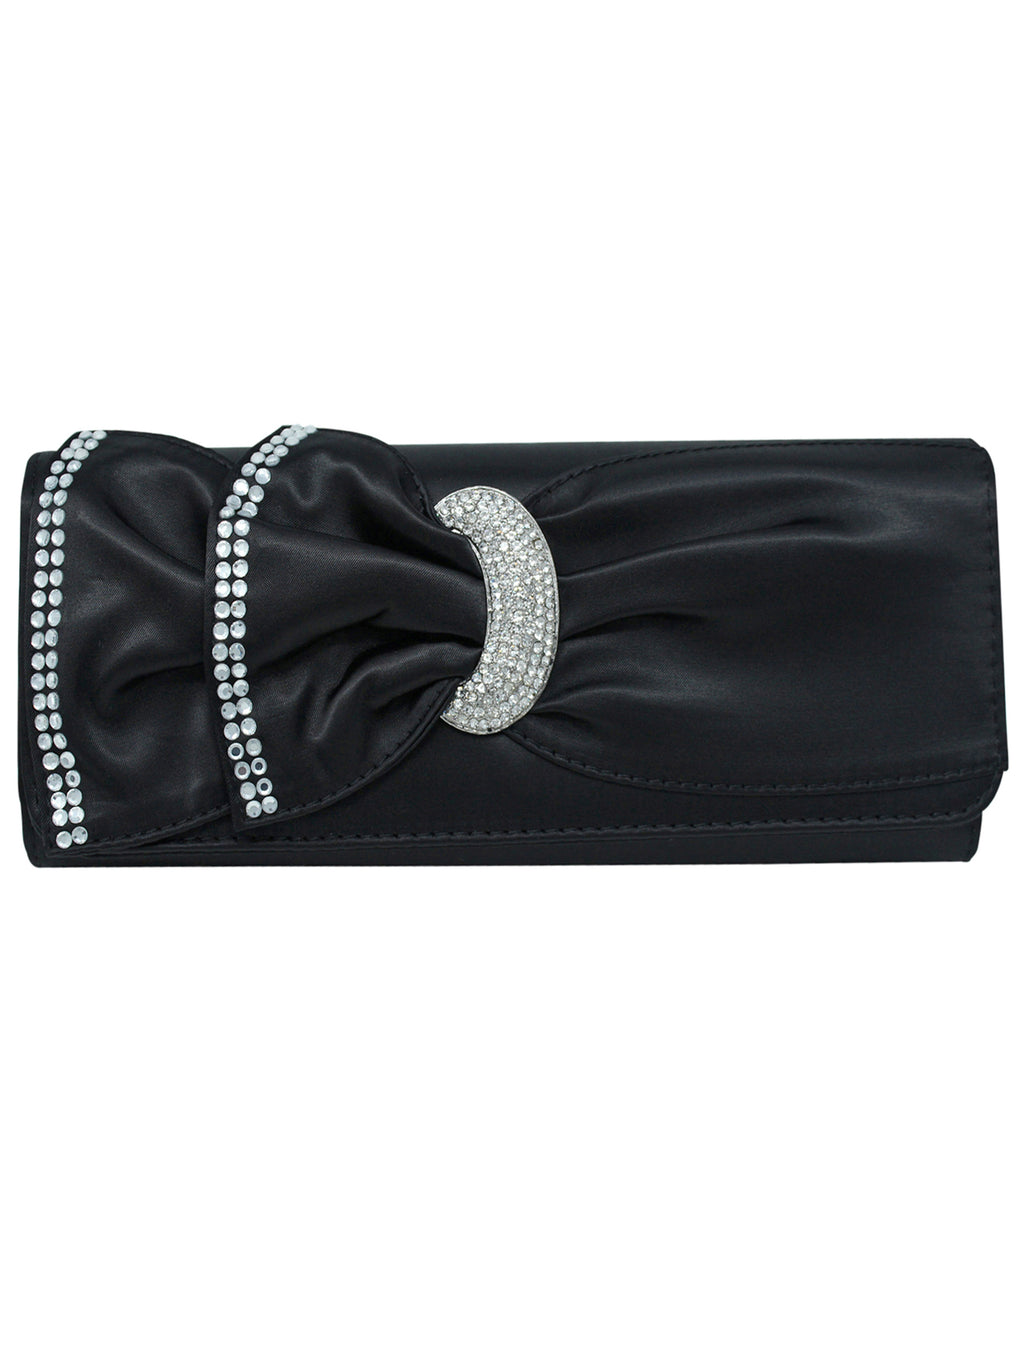 Black Satin Evening Clutch Bag With Rhinestones